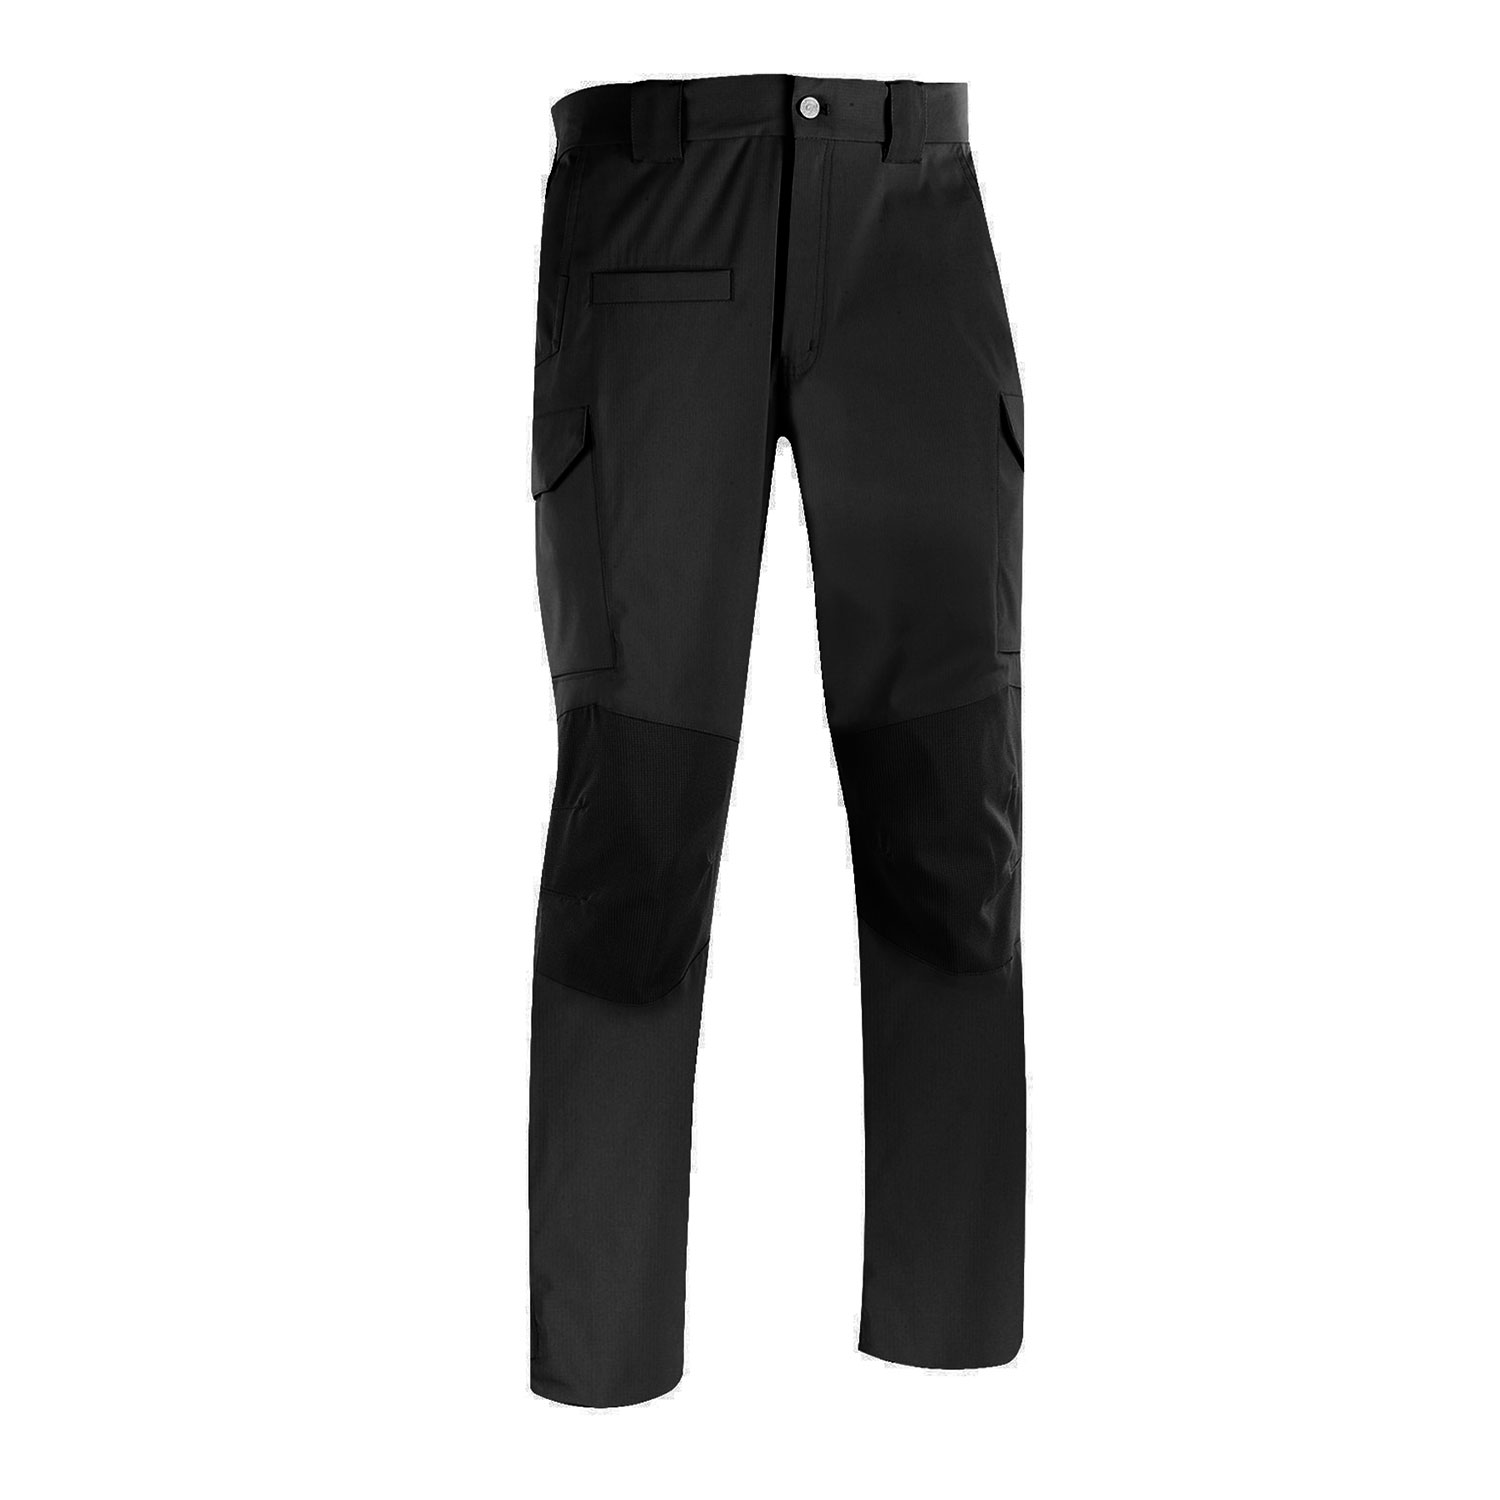 Galls Hybrid Tactical Pant